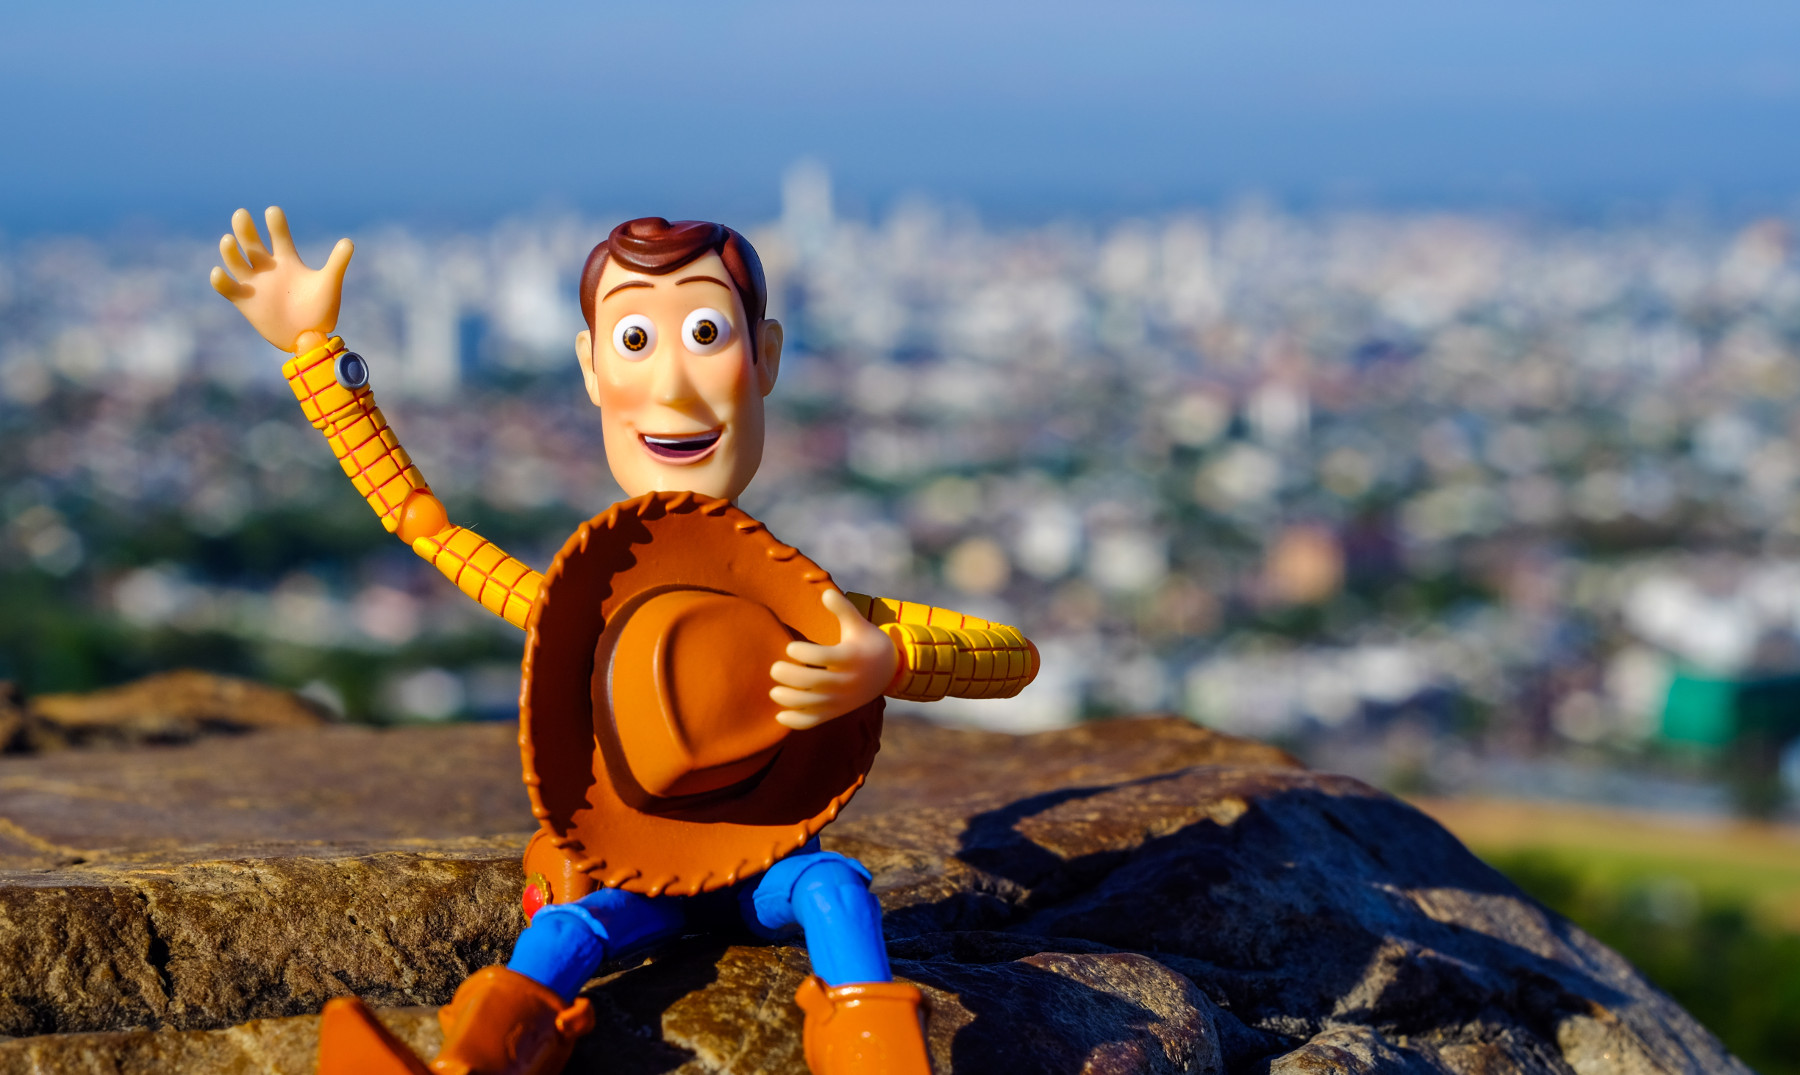 aa9506ab2a255 30 Frases de Toy Story